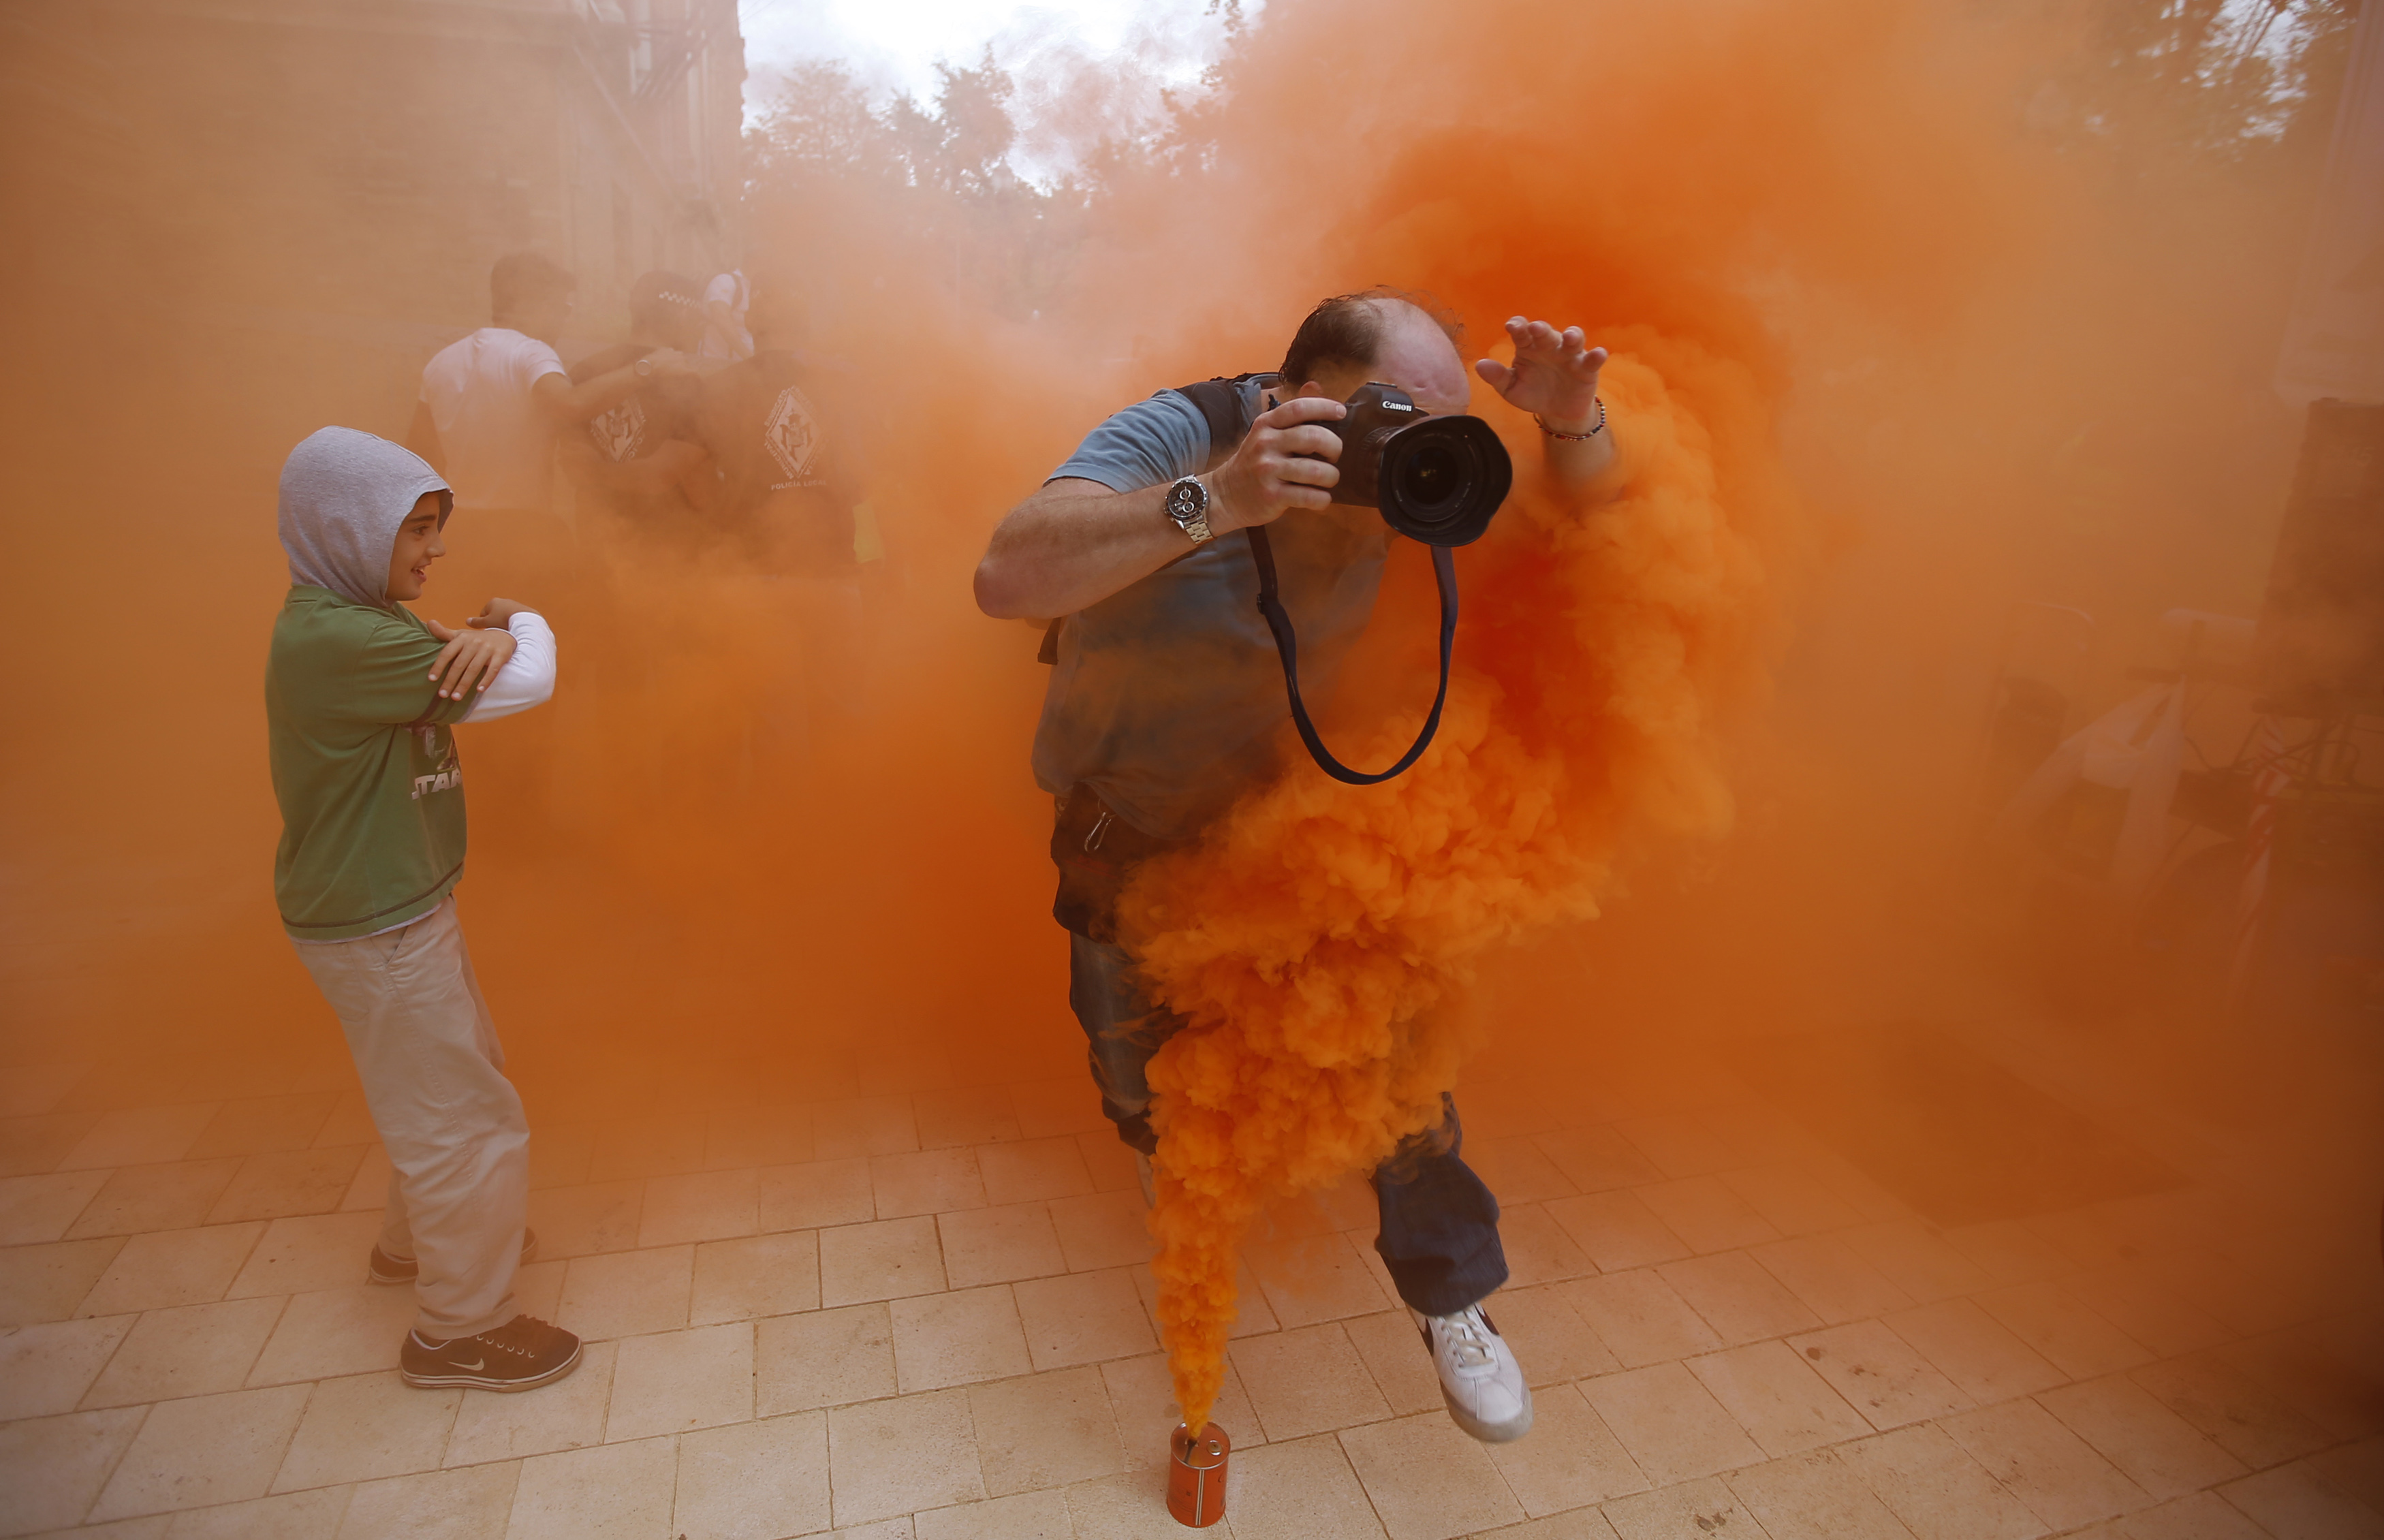 A photographer jumps over a smoke canister